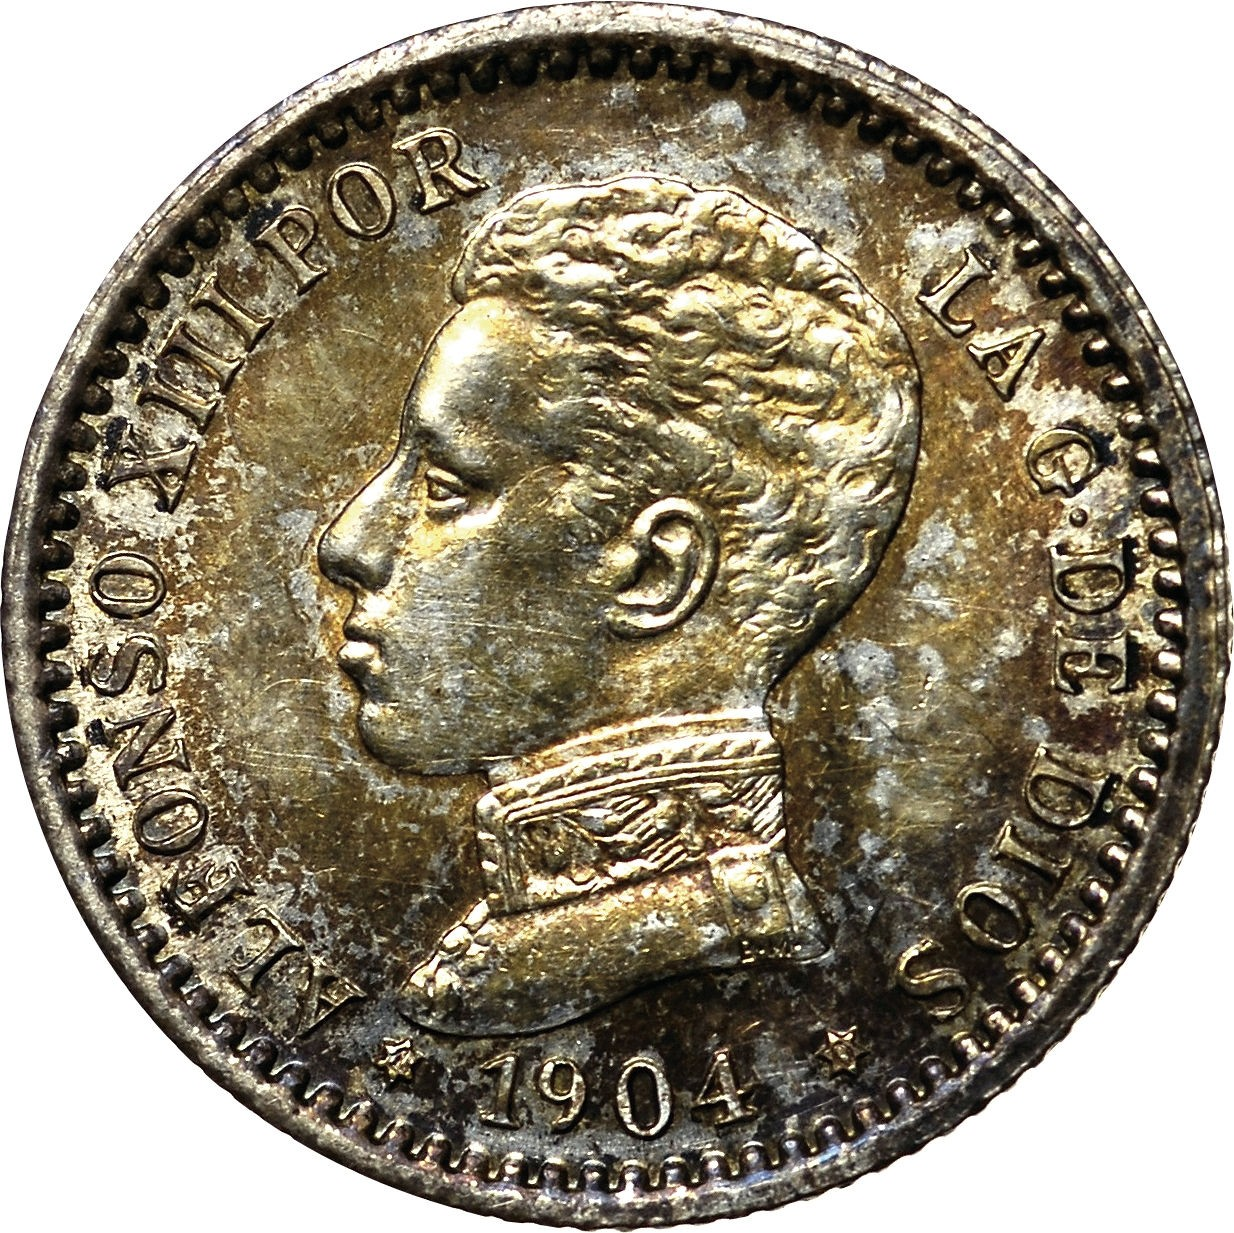 Spain 50 Centimos (1904 Alfonso XIII)